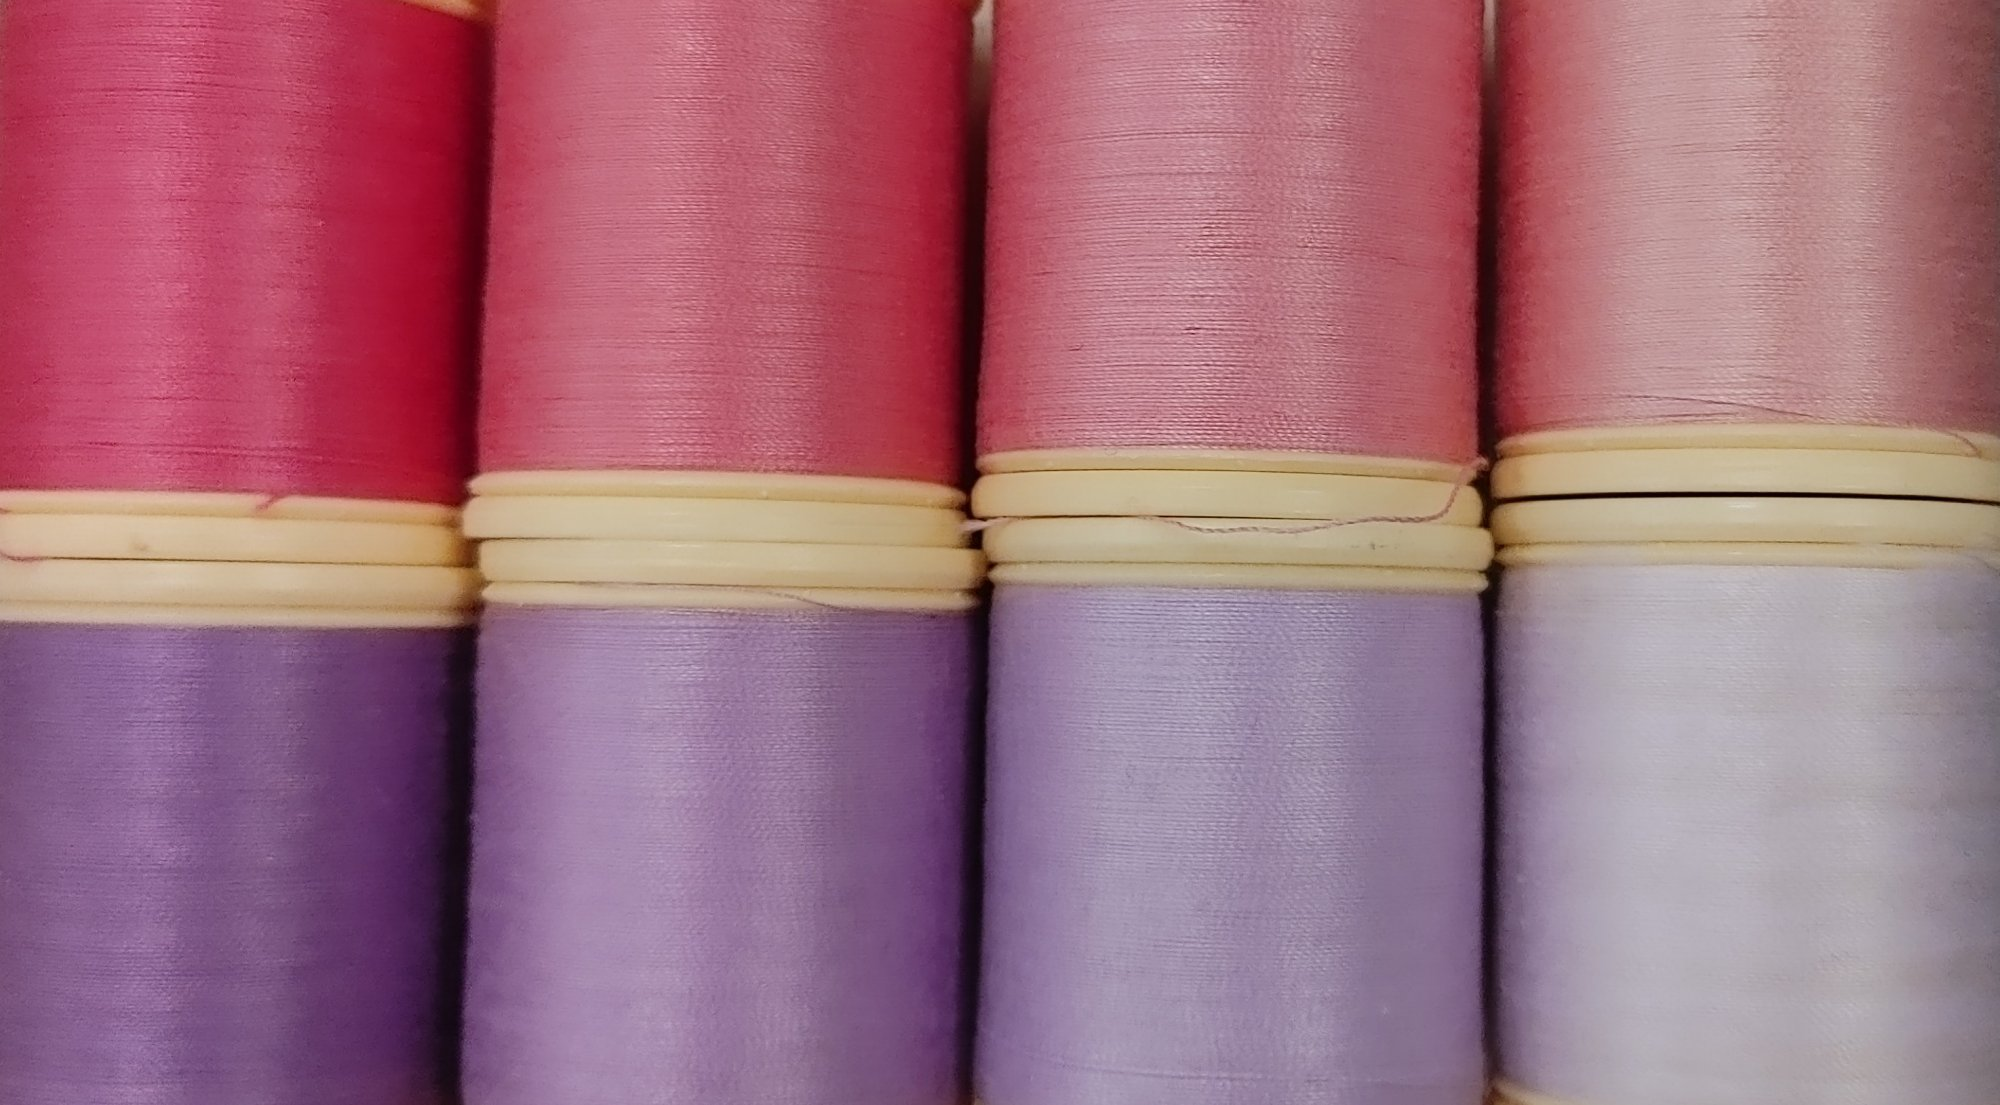 DMC Pinks and purples 8 spool collection of 50 wt cotton thread